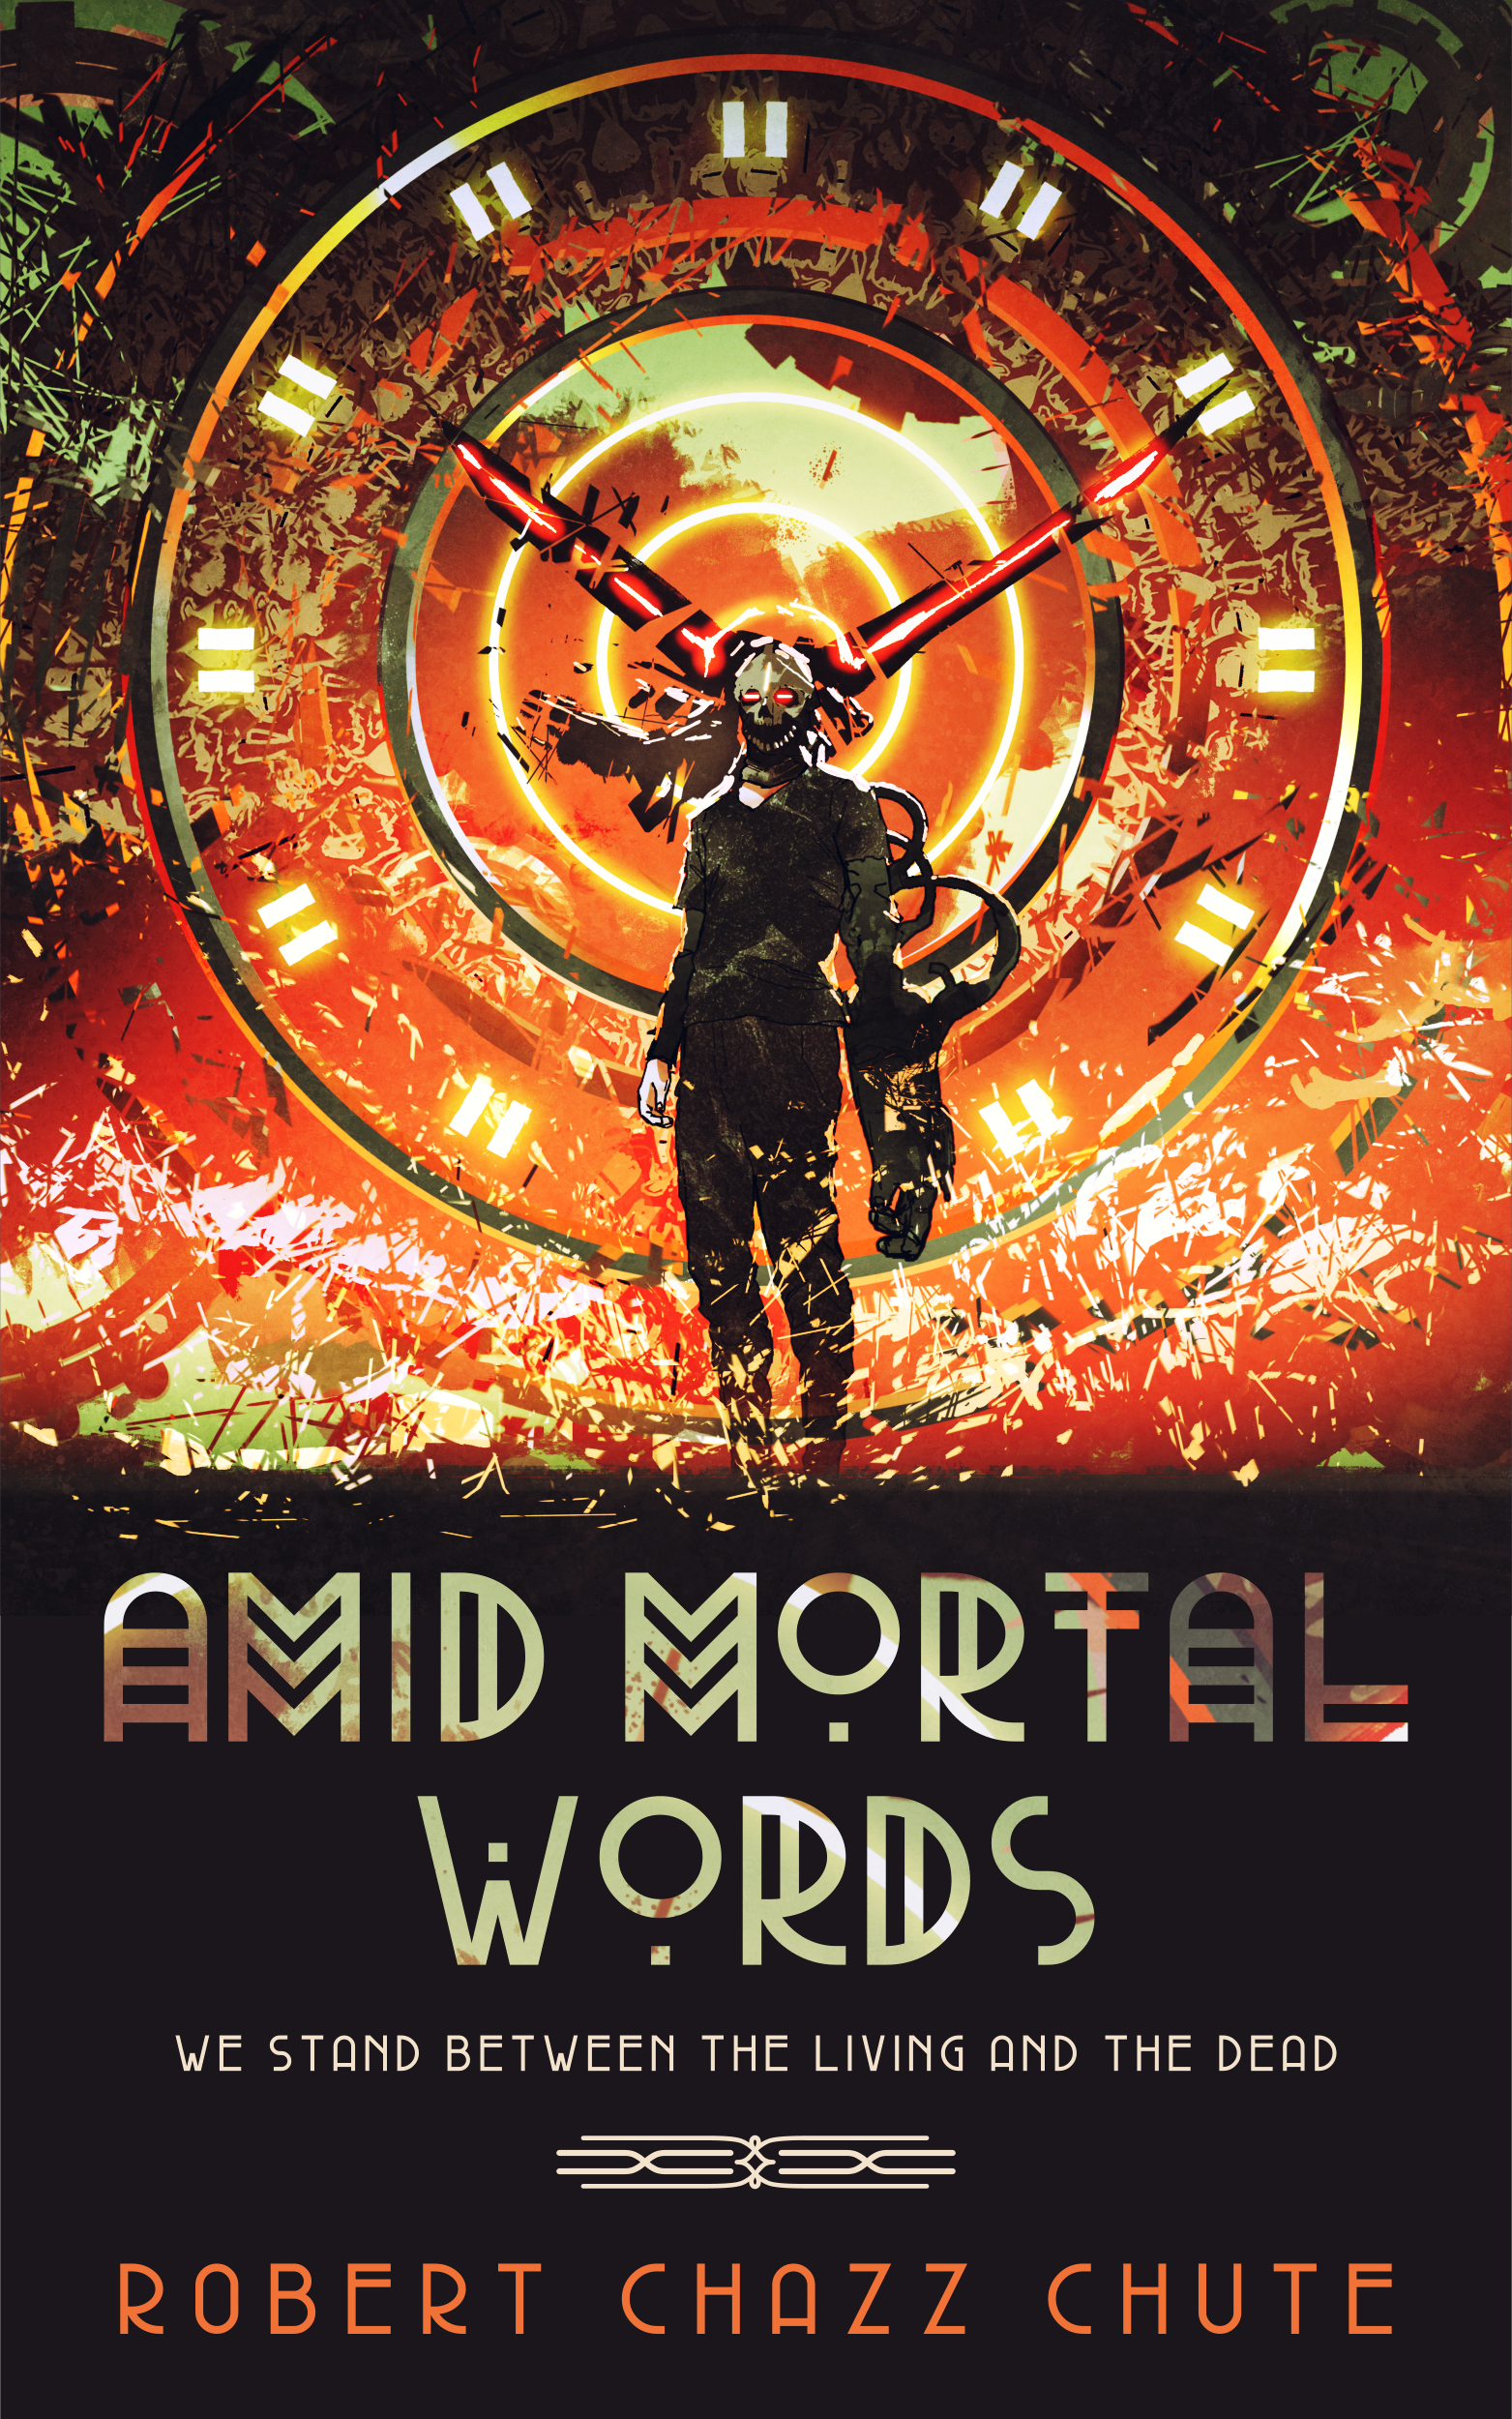 Amid Mortal Words - High Resolution